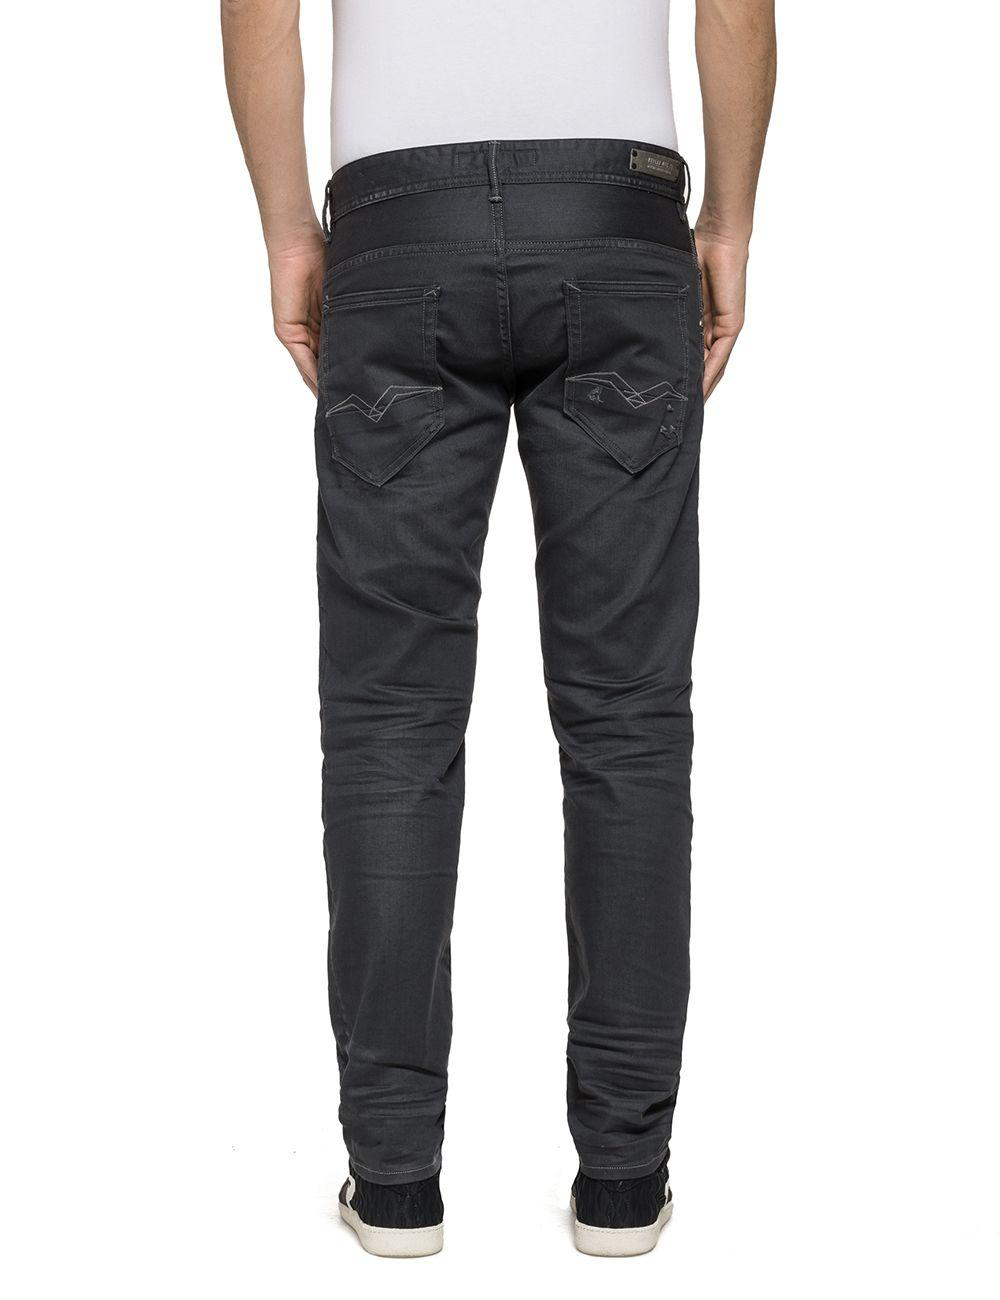 Replay Denim Thyber Slim Fit Jeans in Blue for Men